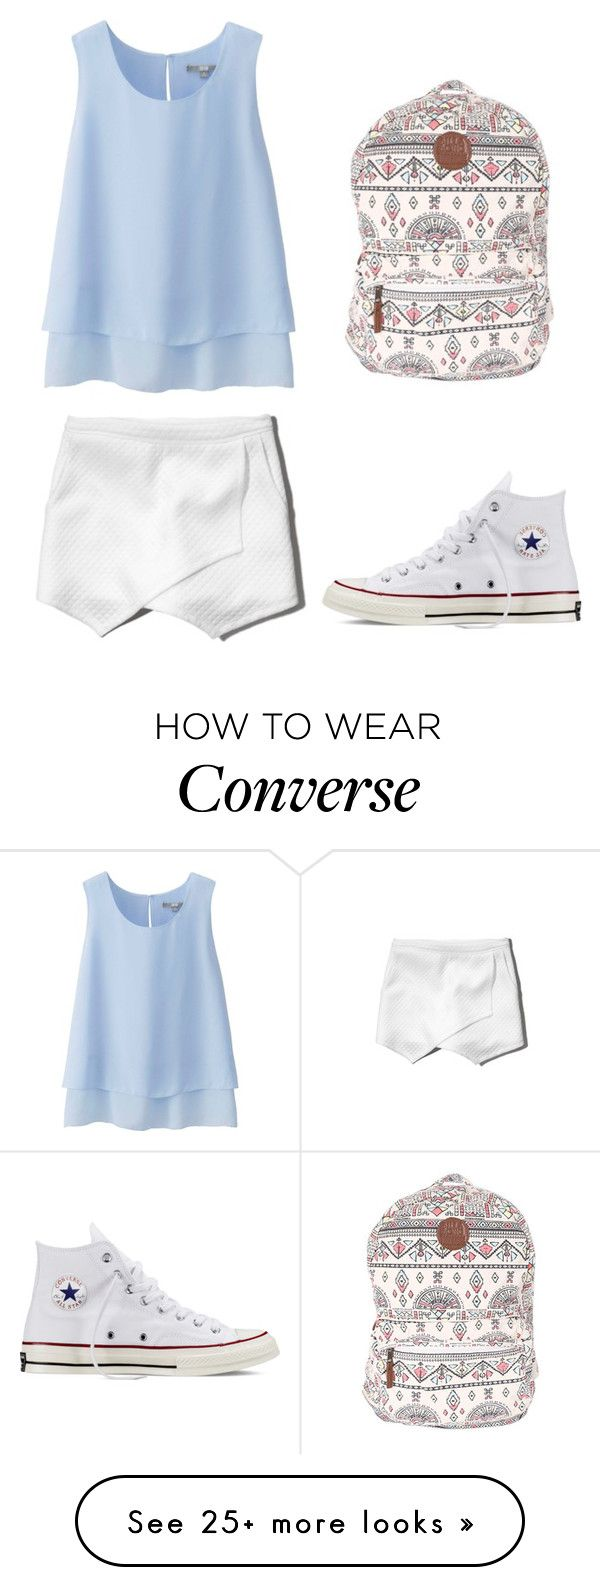 """Summer Rain"" by izzy9282003 on Polyvore featuring Uniqlo, Abercrombie & Fitch, Billabong, Converse, women's clothing, women's fashion, women, female, woman and misses"